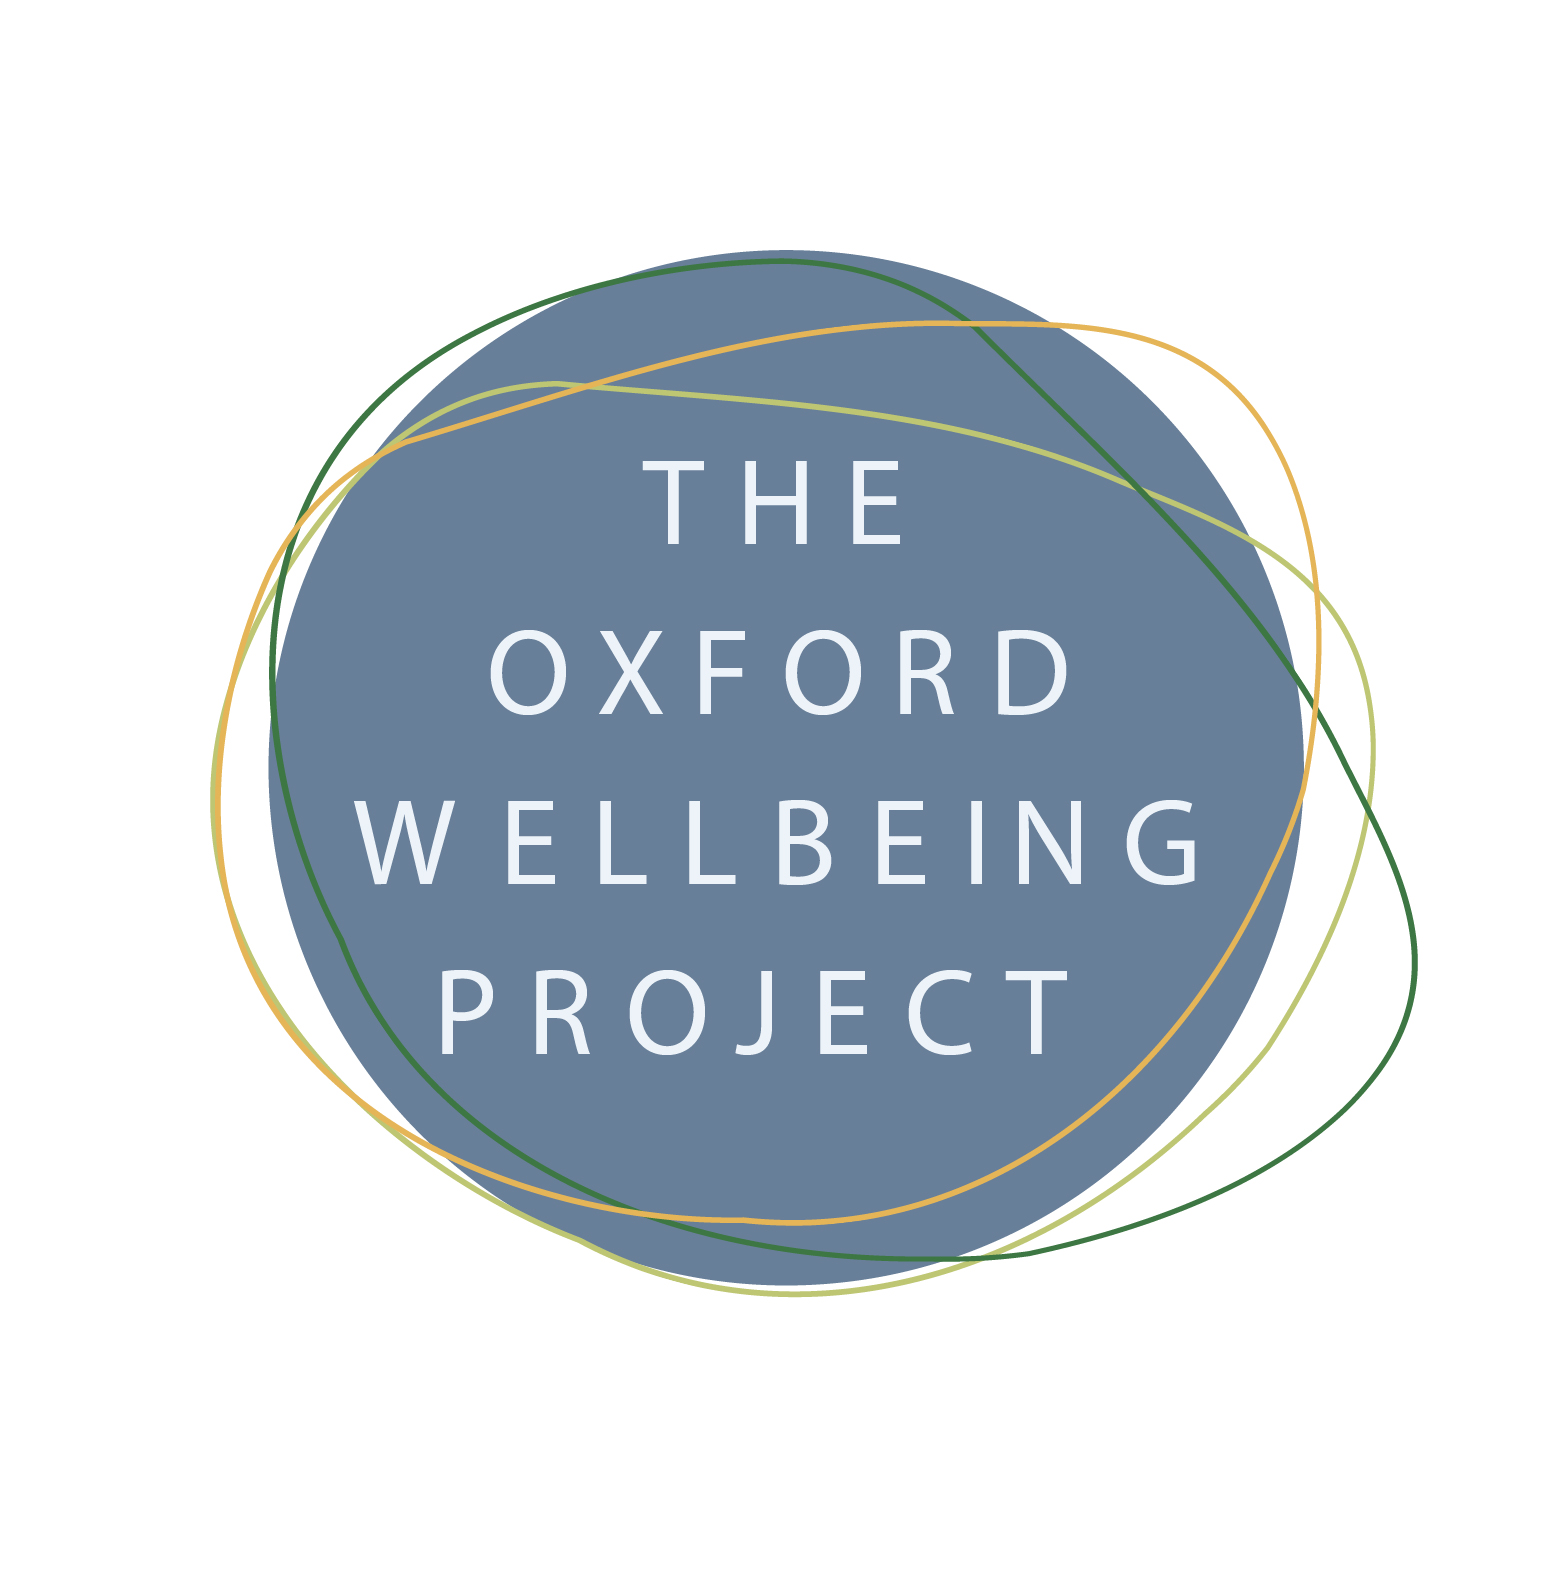 The Oxford Wellbeing Project